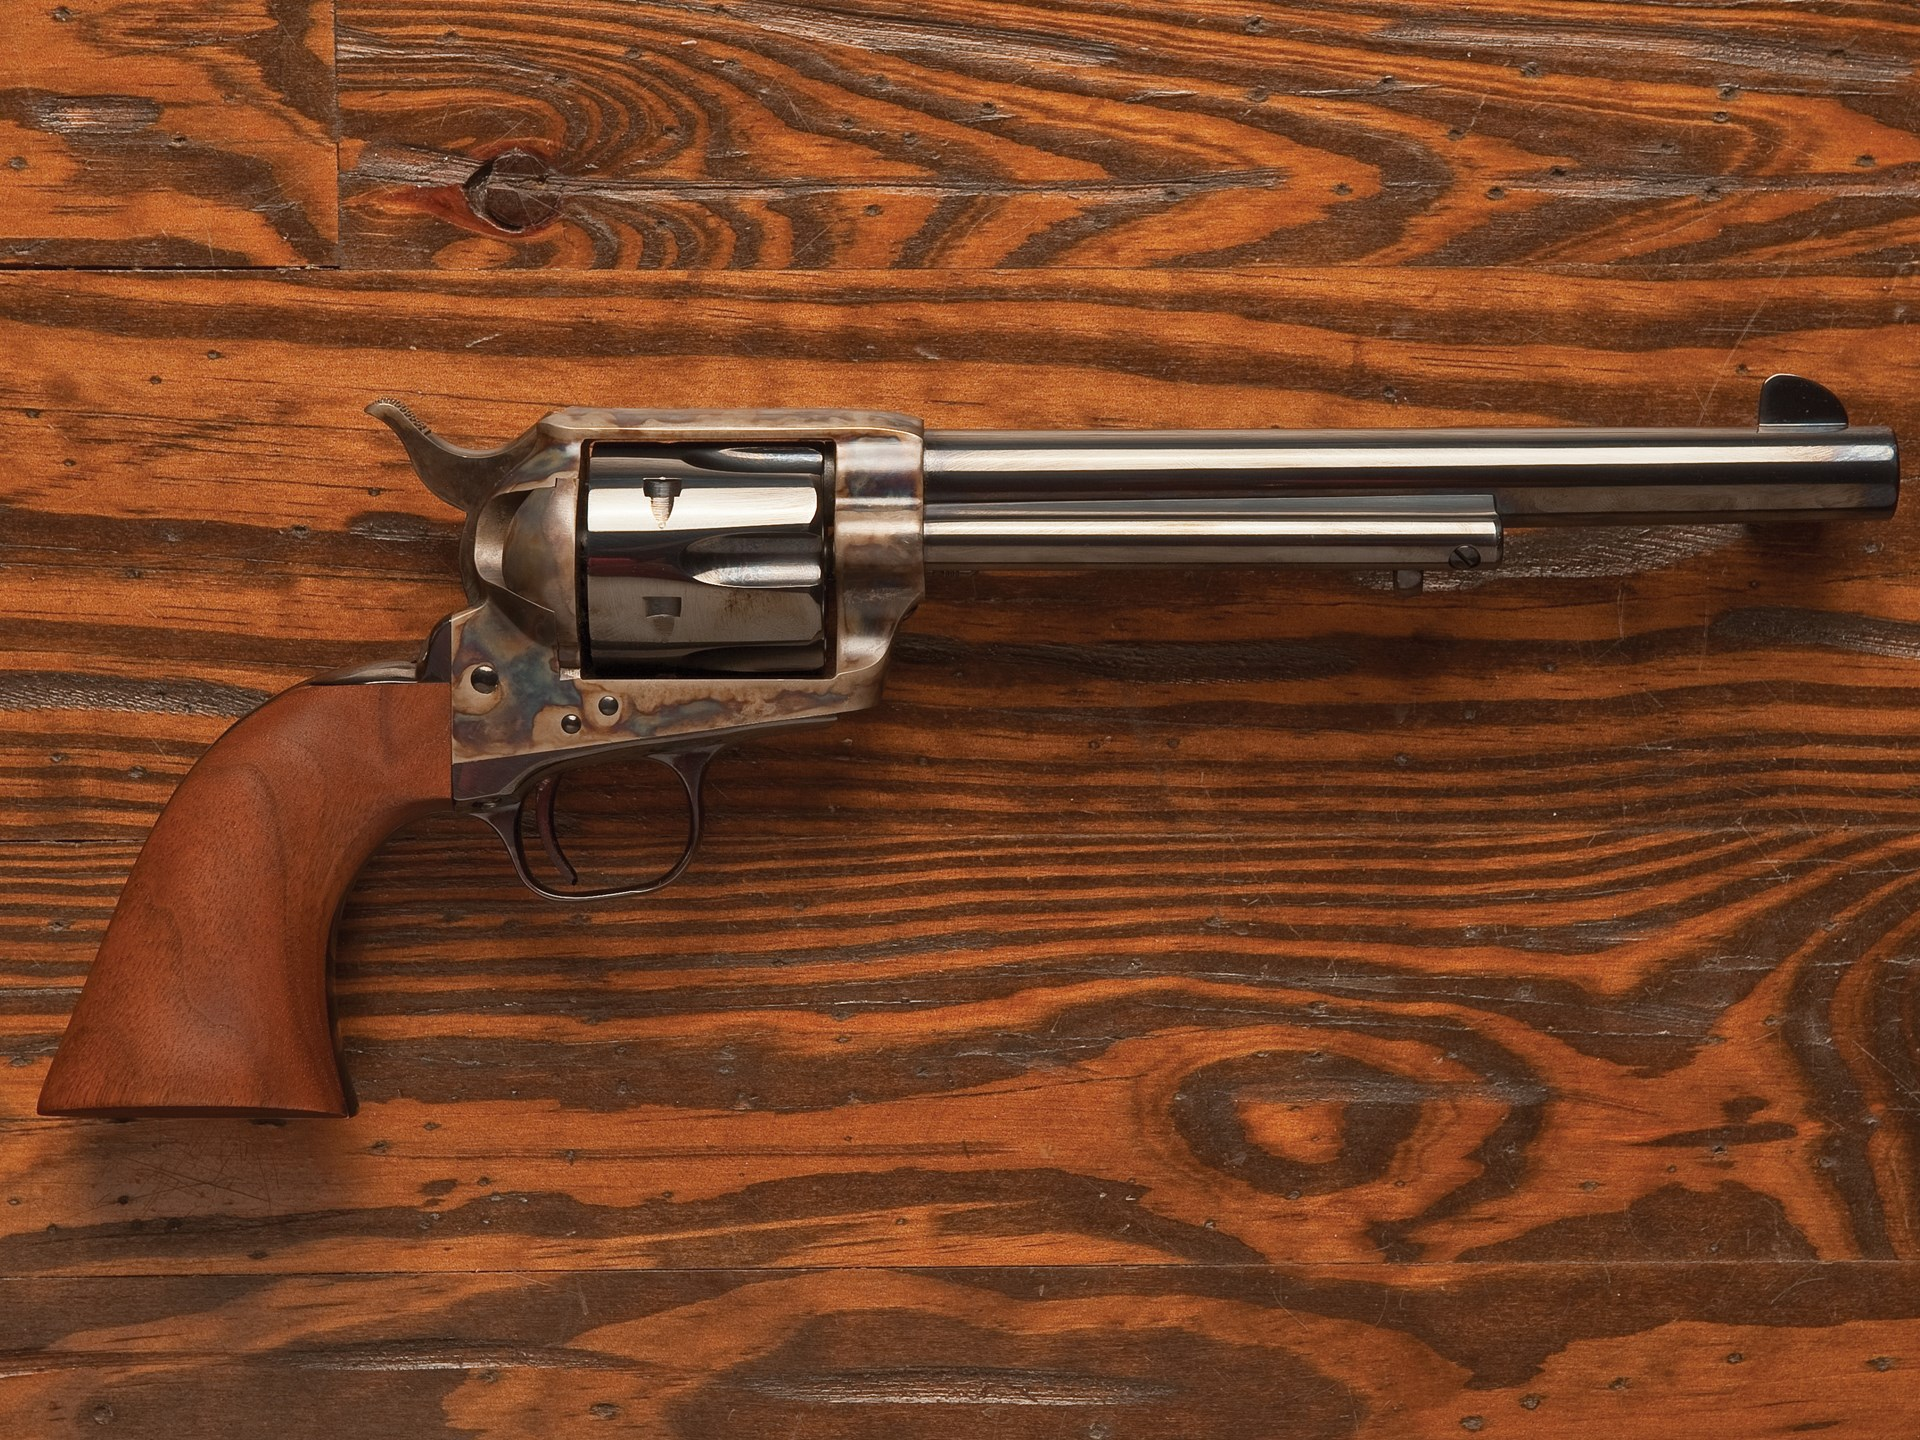 RM Sotheby's - Pair of Commemorative Colt Revolvers | The Milhous